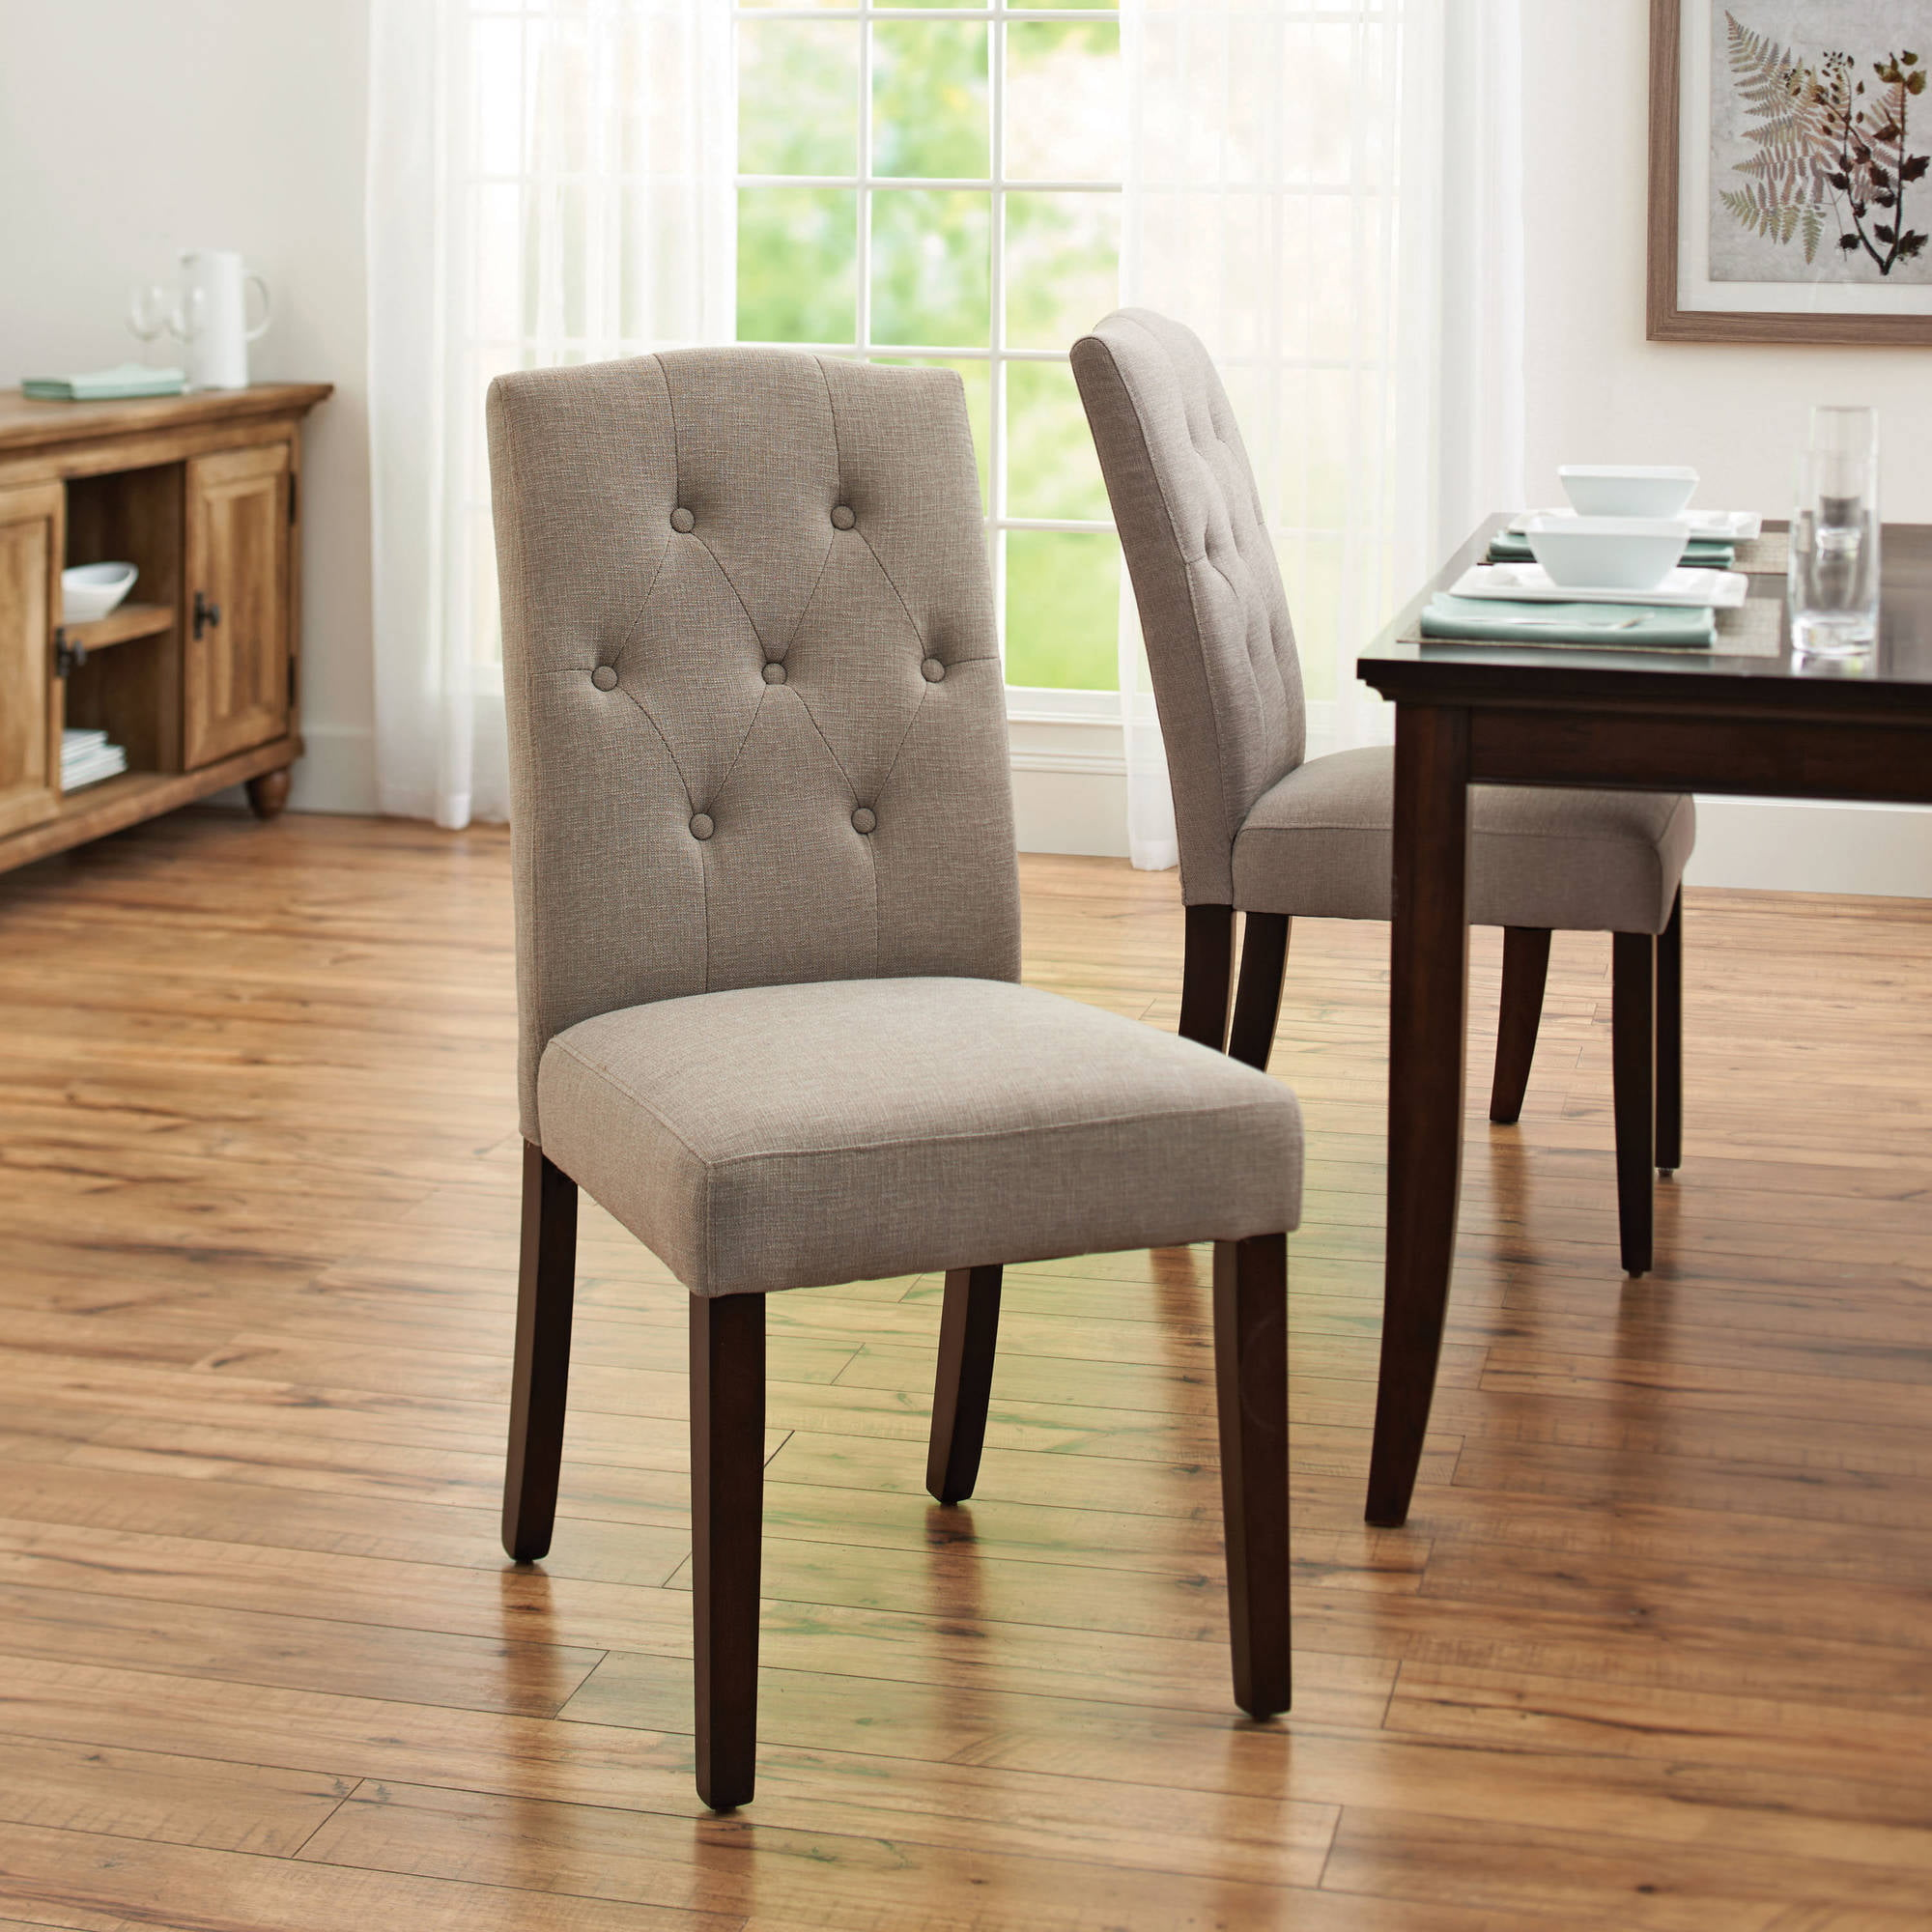 shaker dining chairs set of 4 espresso walmartcom - Table And Chair Sets Kitchen